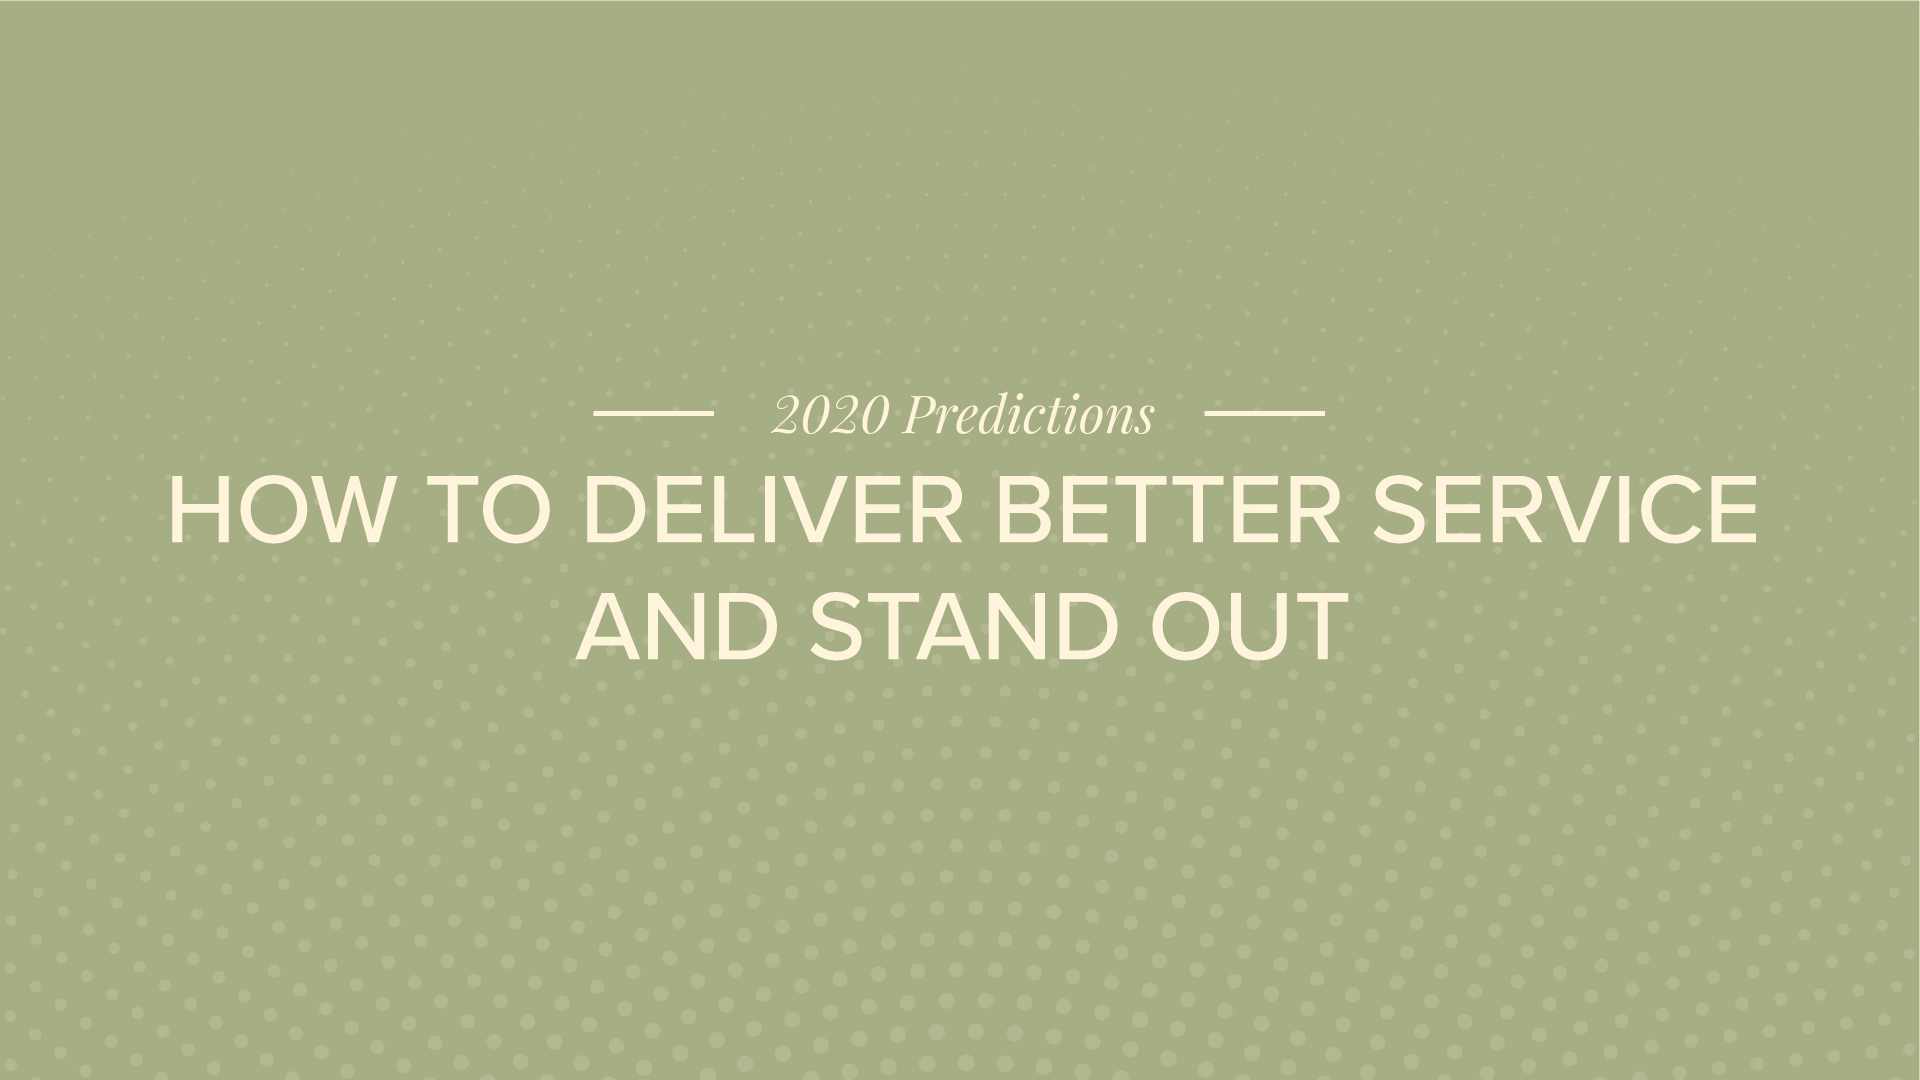 Customers Expect More in 2020: How to Deliver Better Service and Stand Out